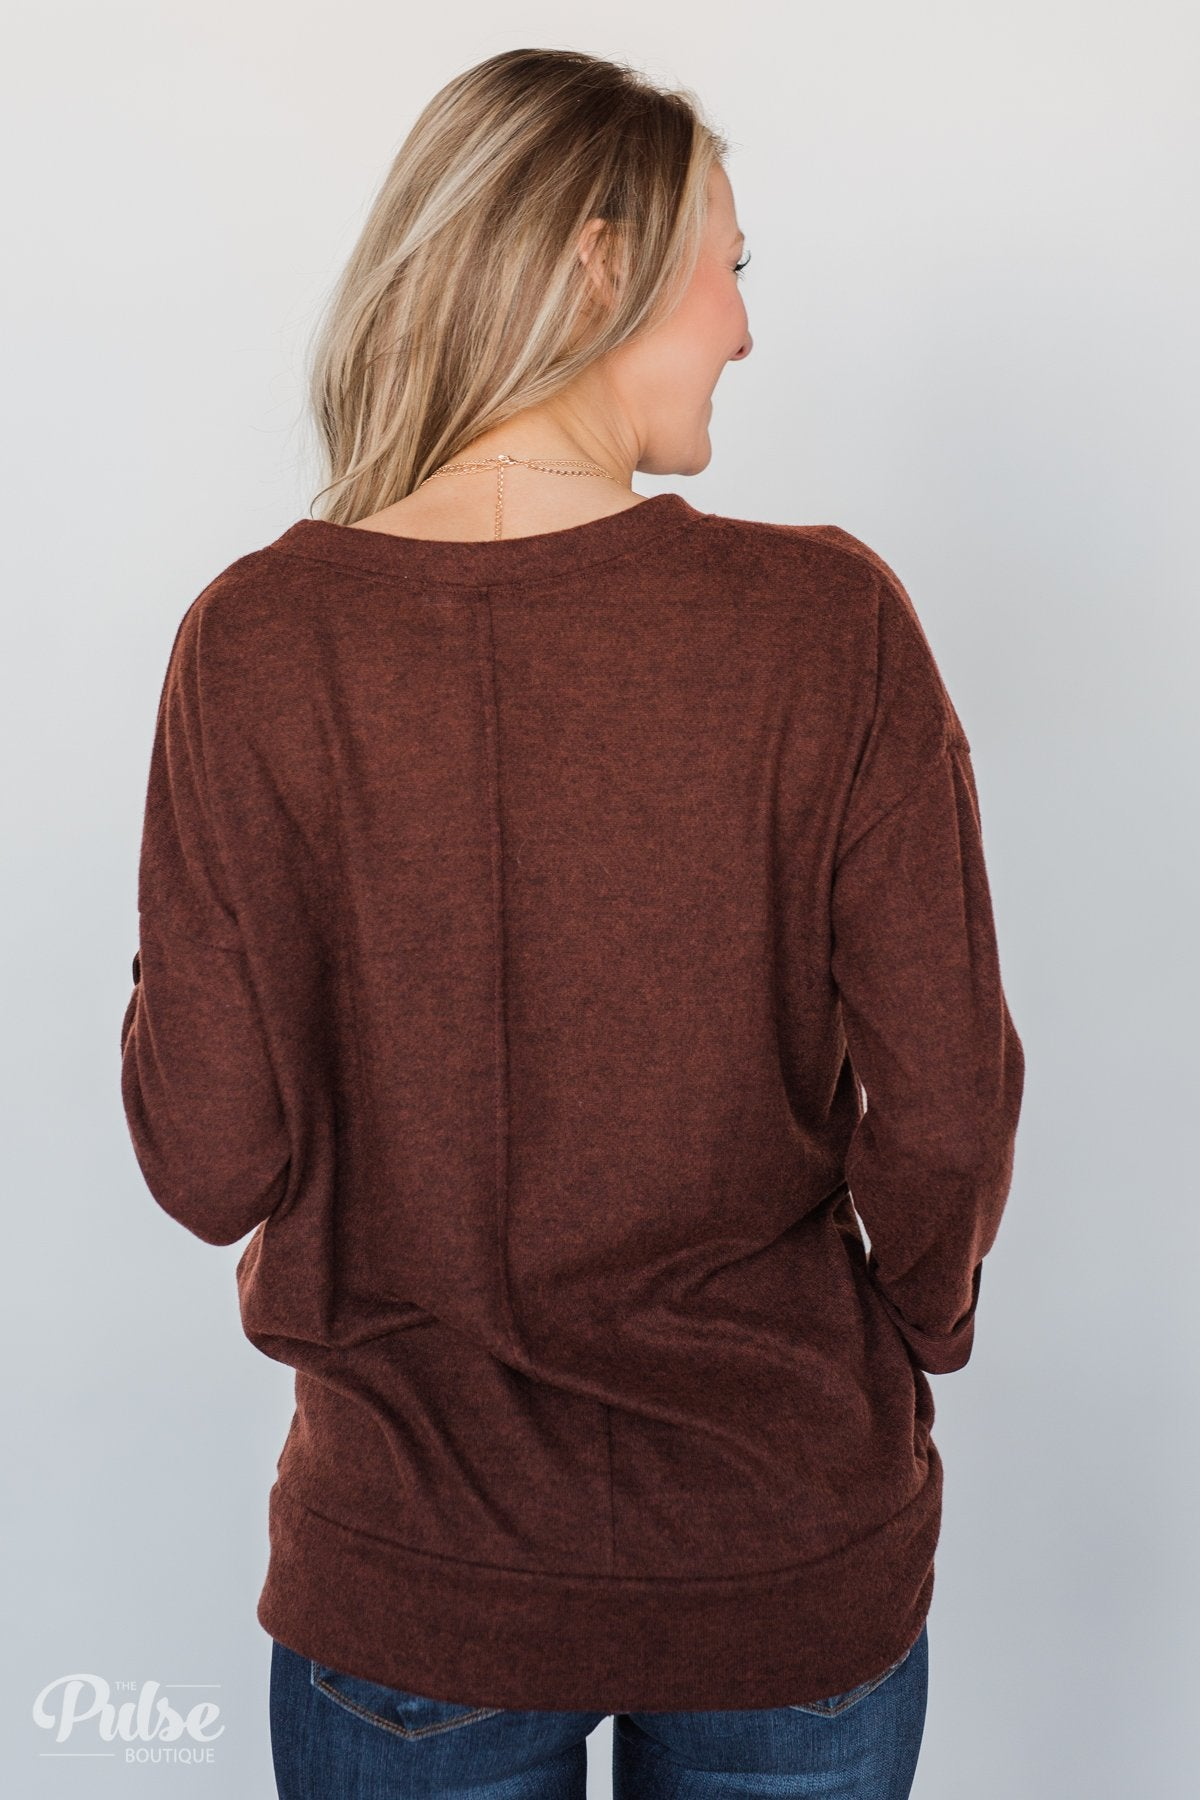 Lead the Way Pullover Sweater- Rust